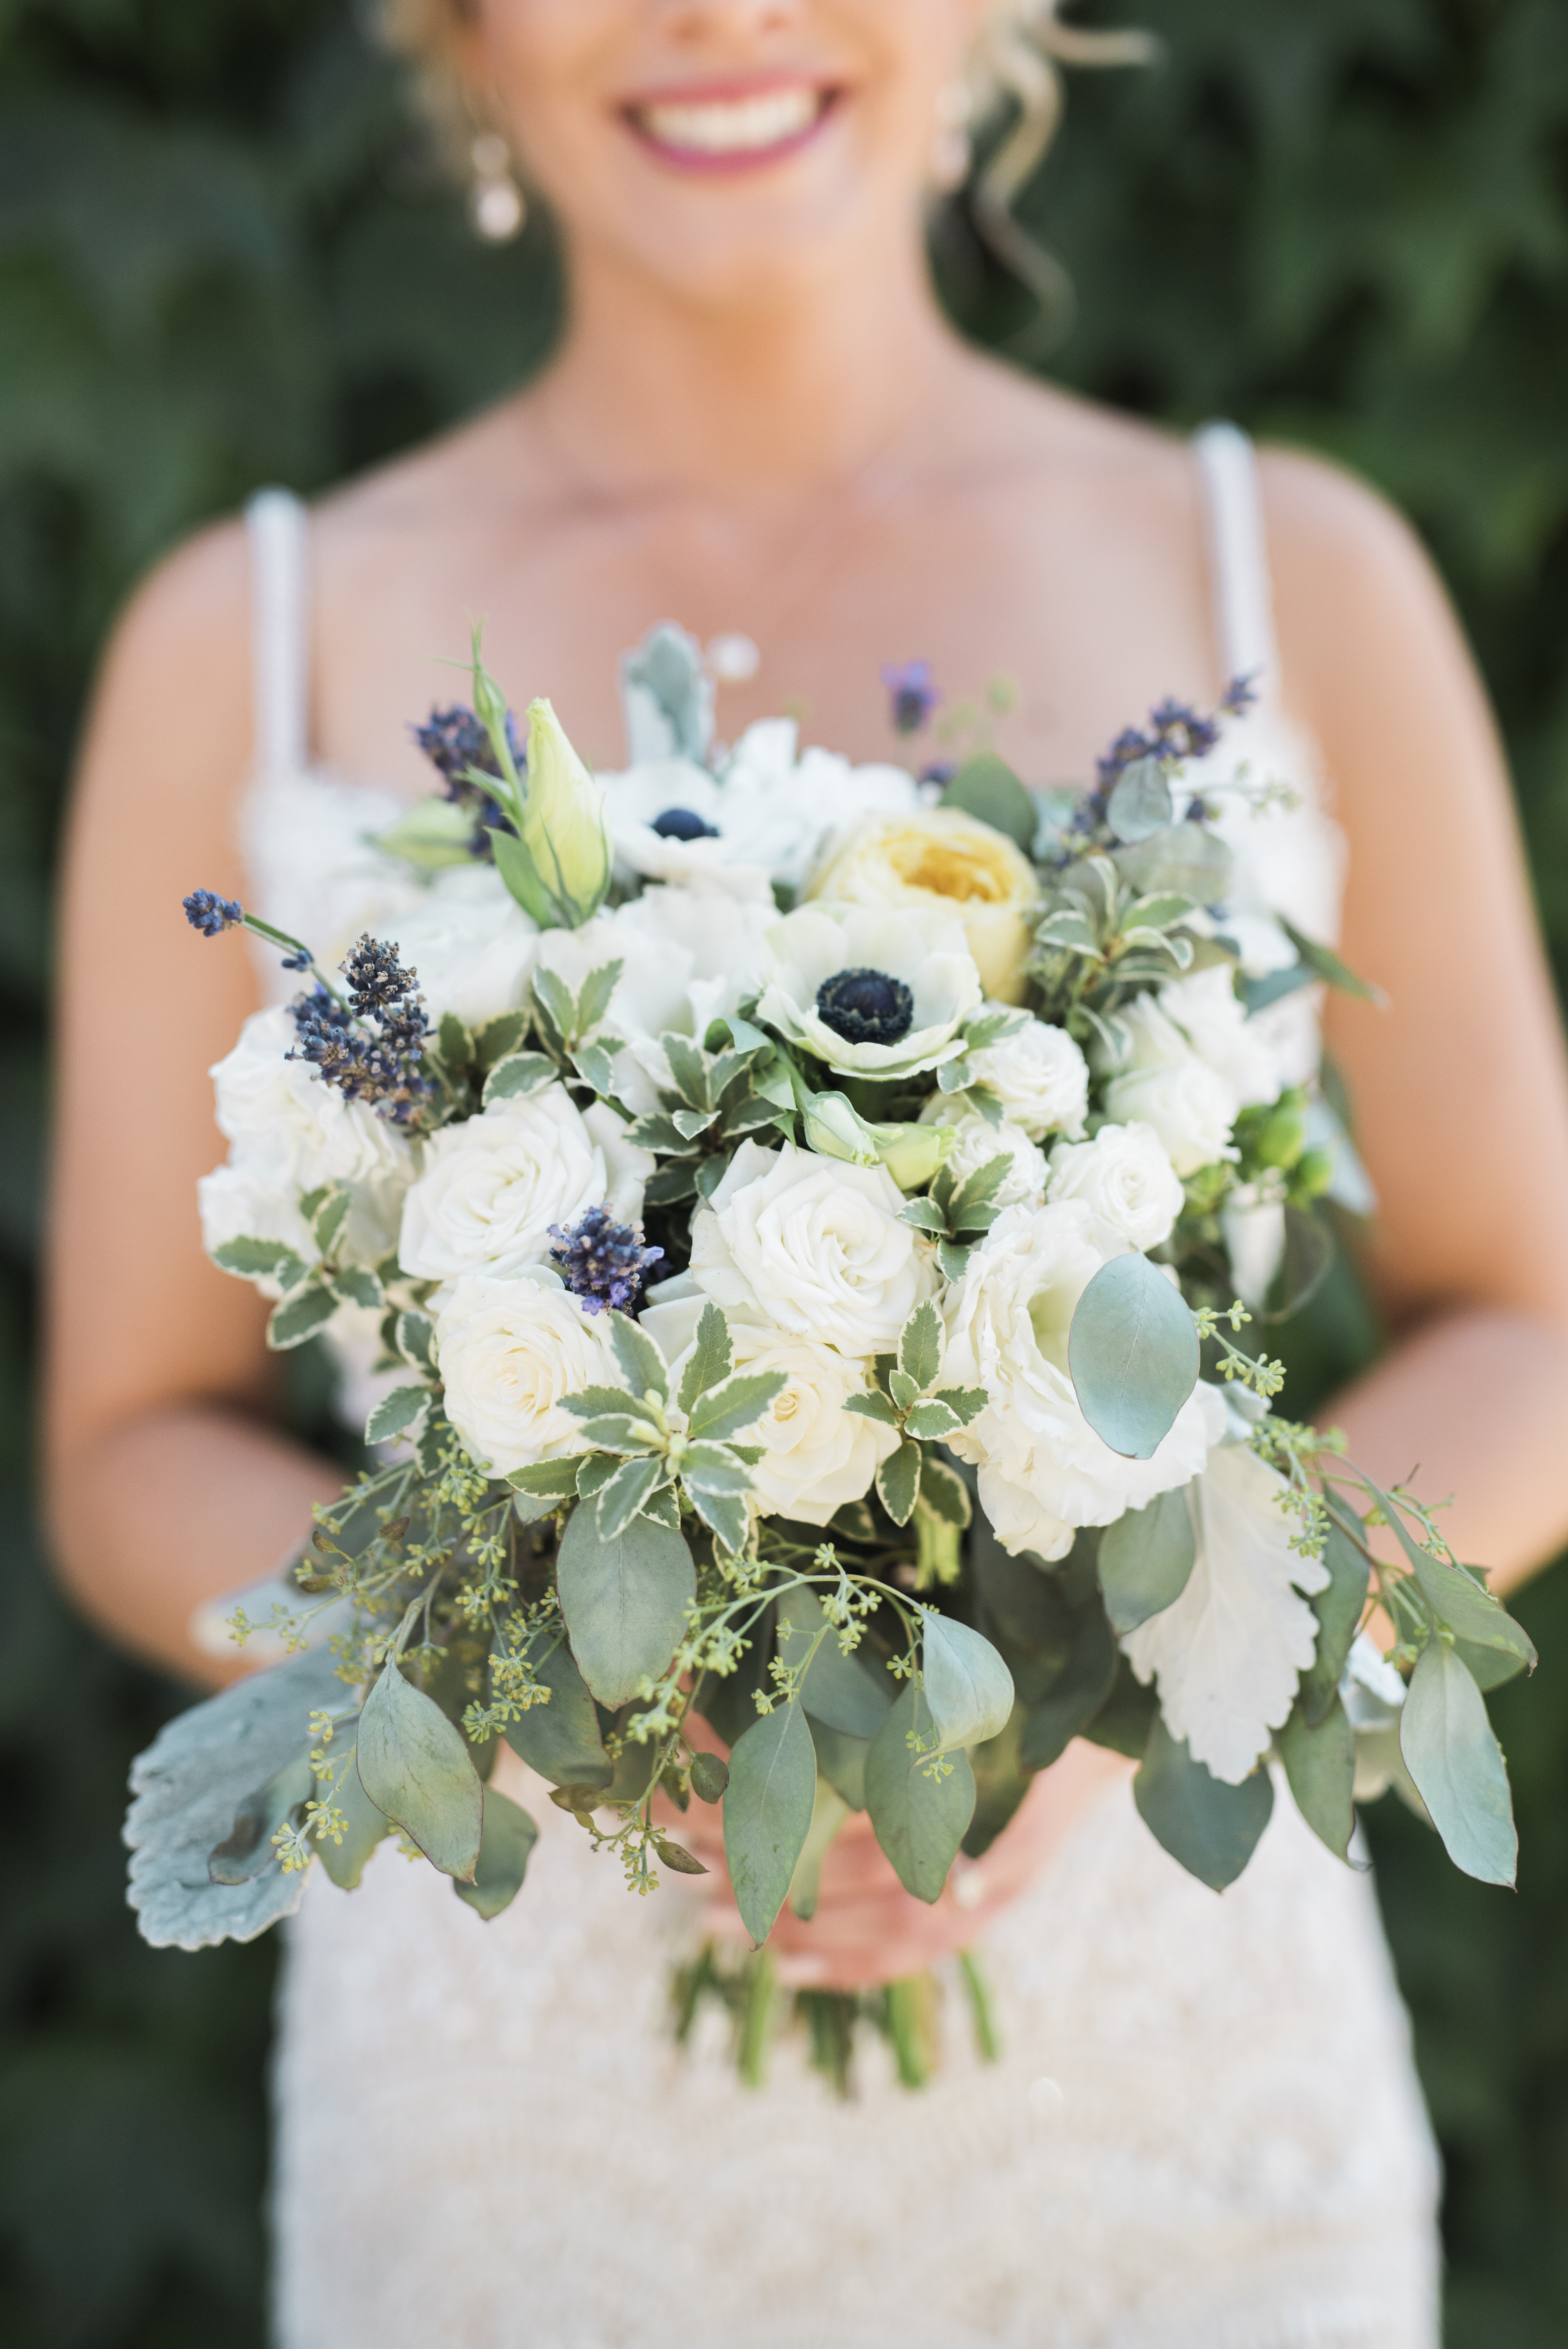 Loomis Ranch-Shannon McMillen Photography-31